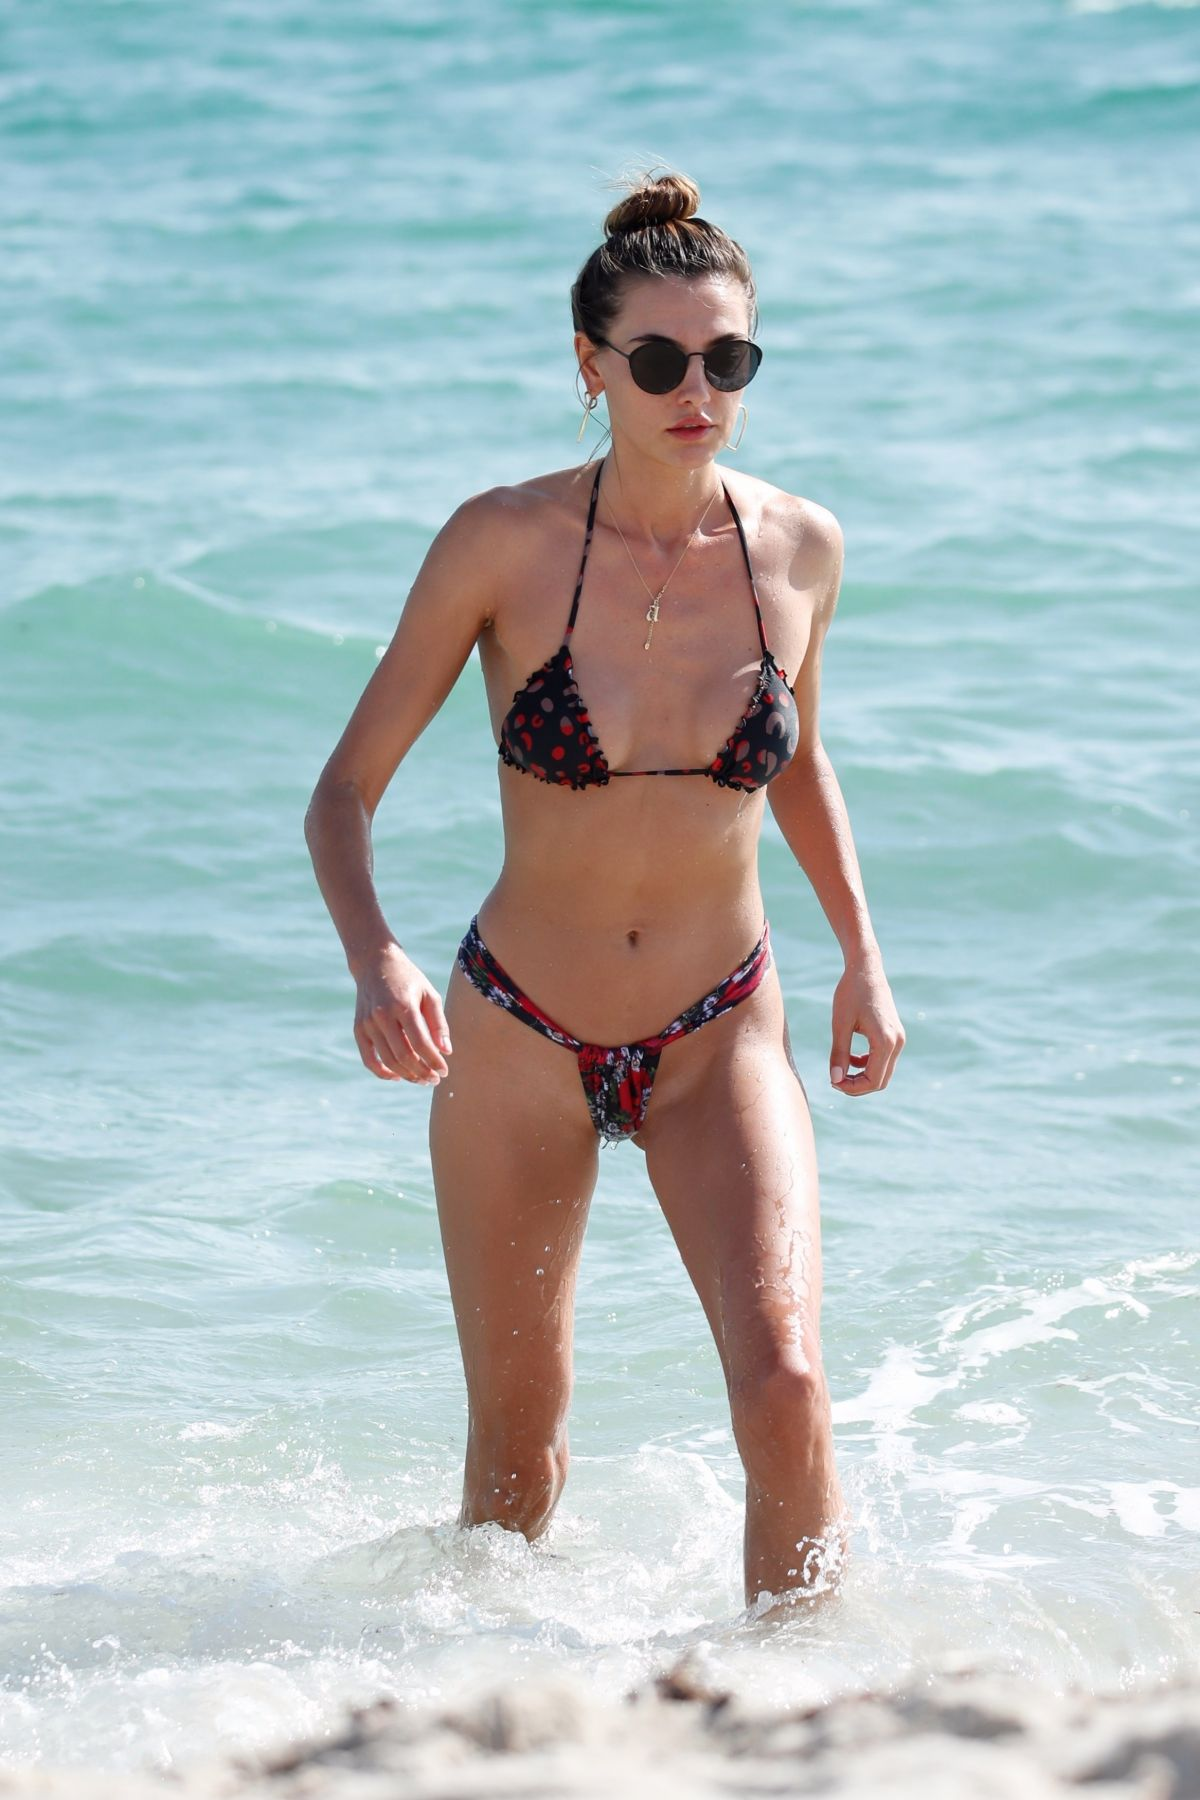 Alina Baikova in Bikini on the beach in Miami Pic 3 of 35